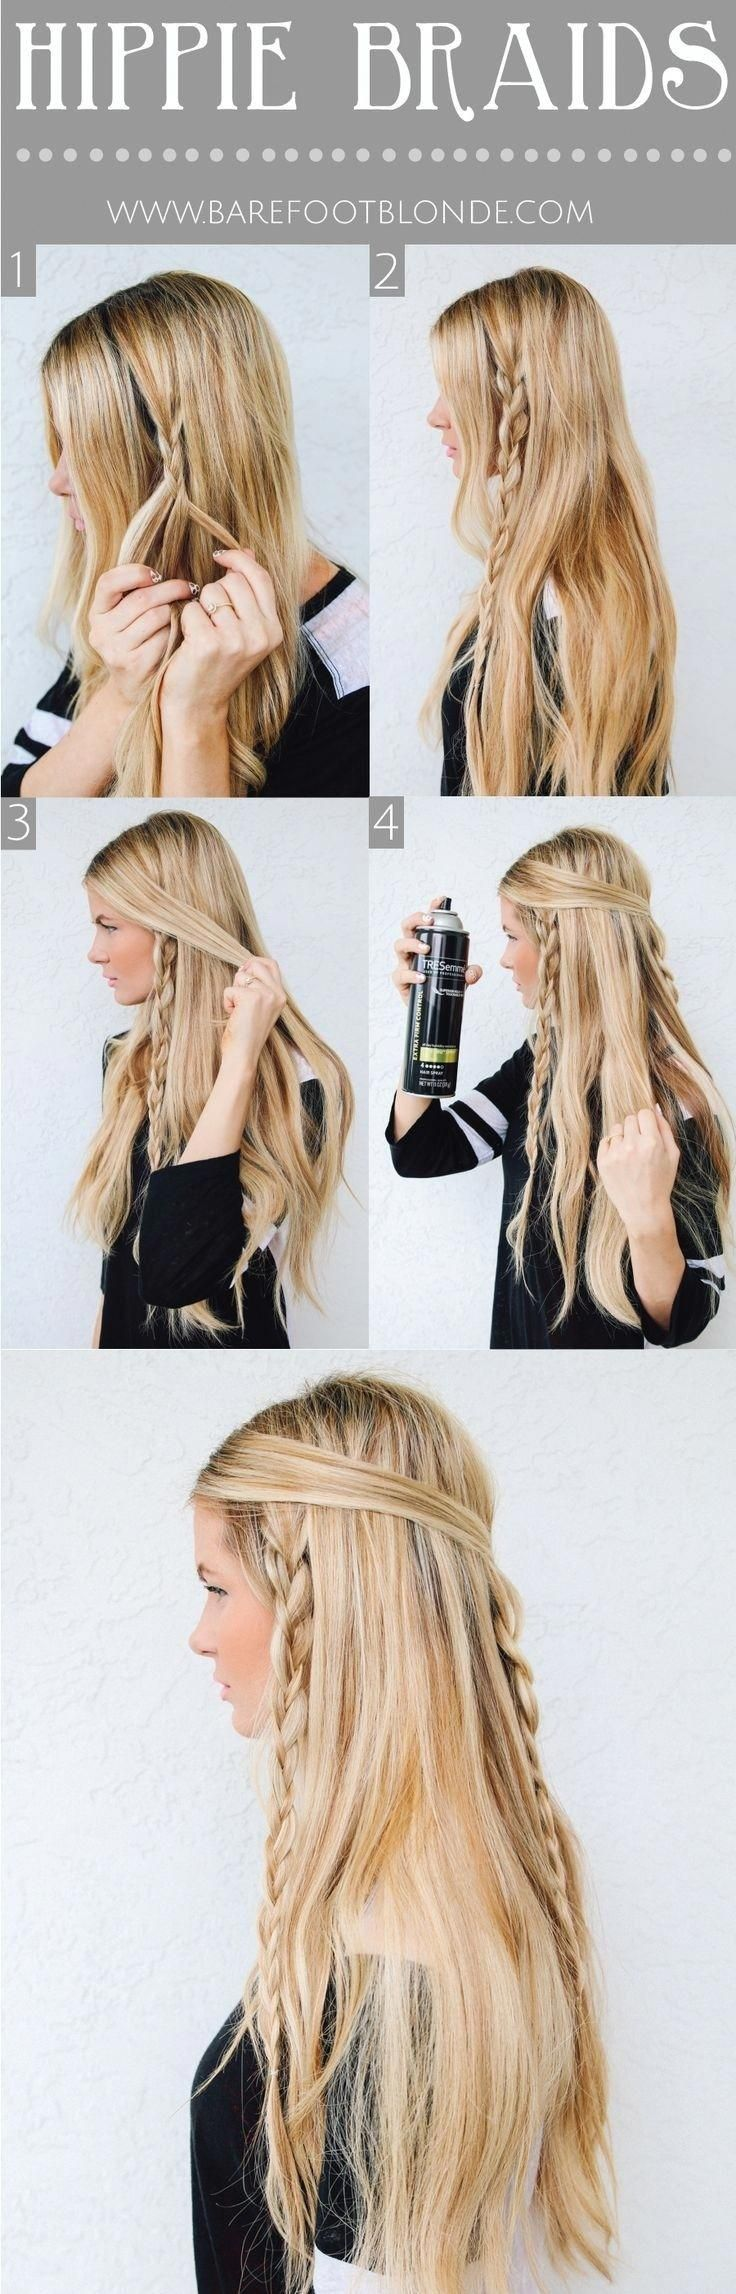 messy short hairstyles Boho #frenchbraid